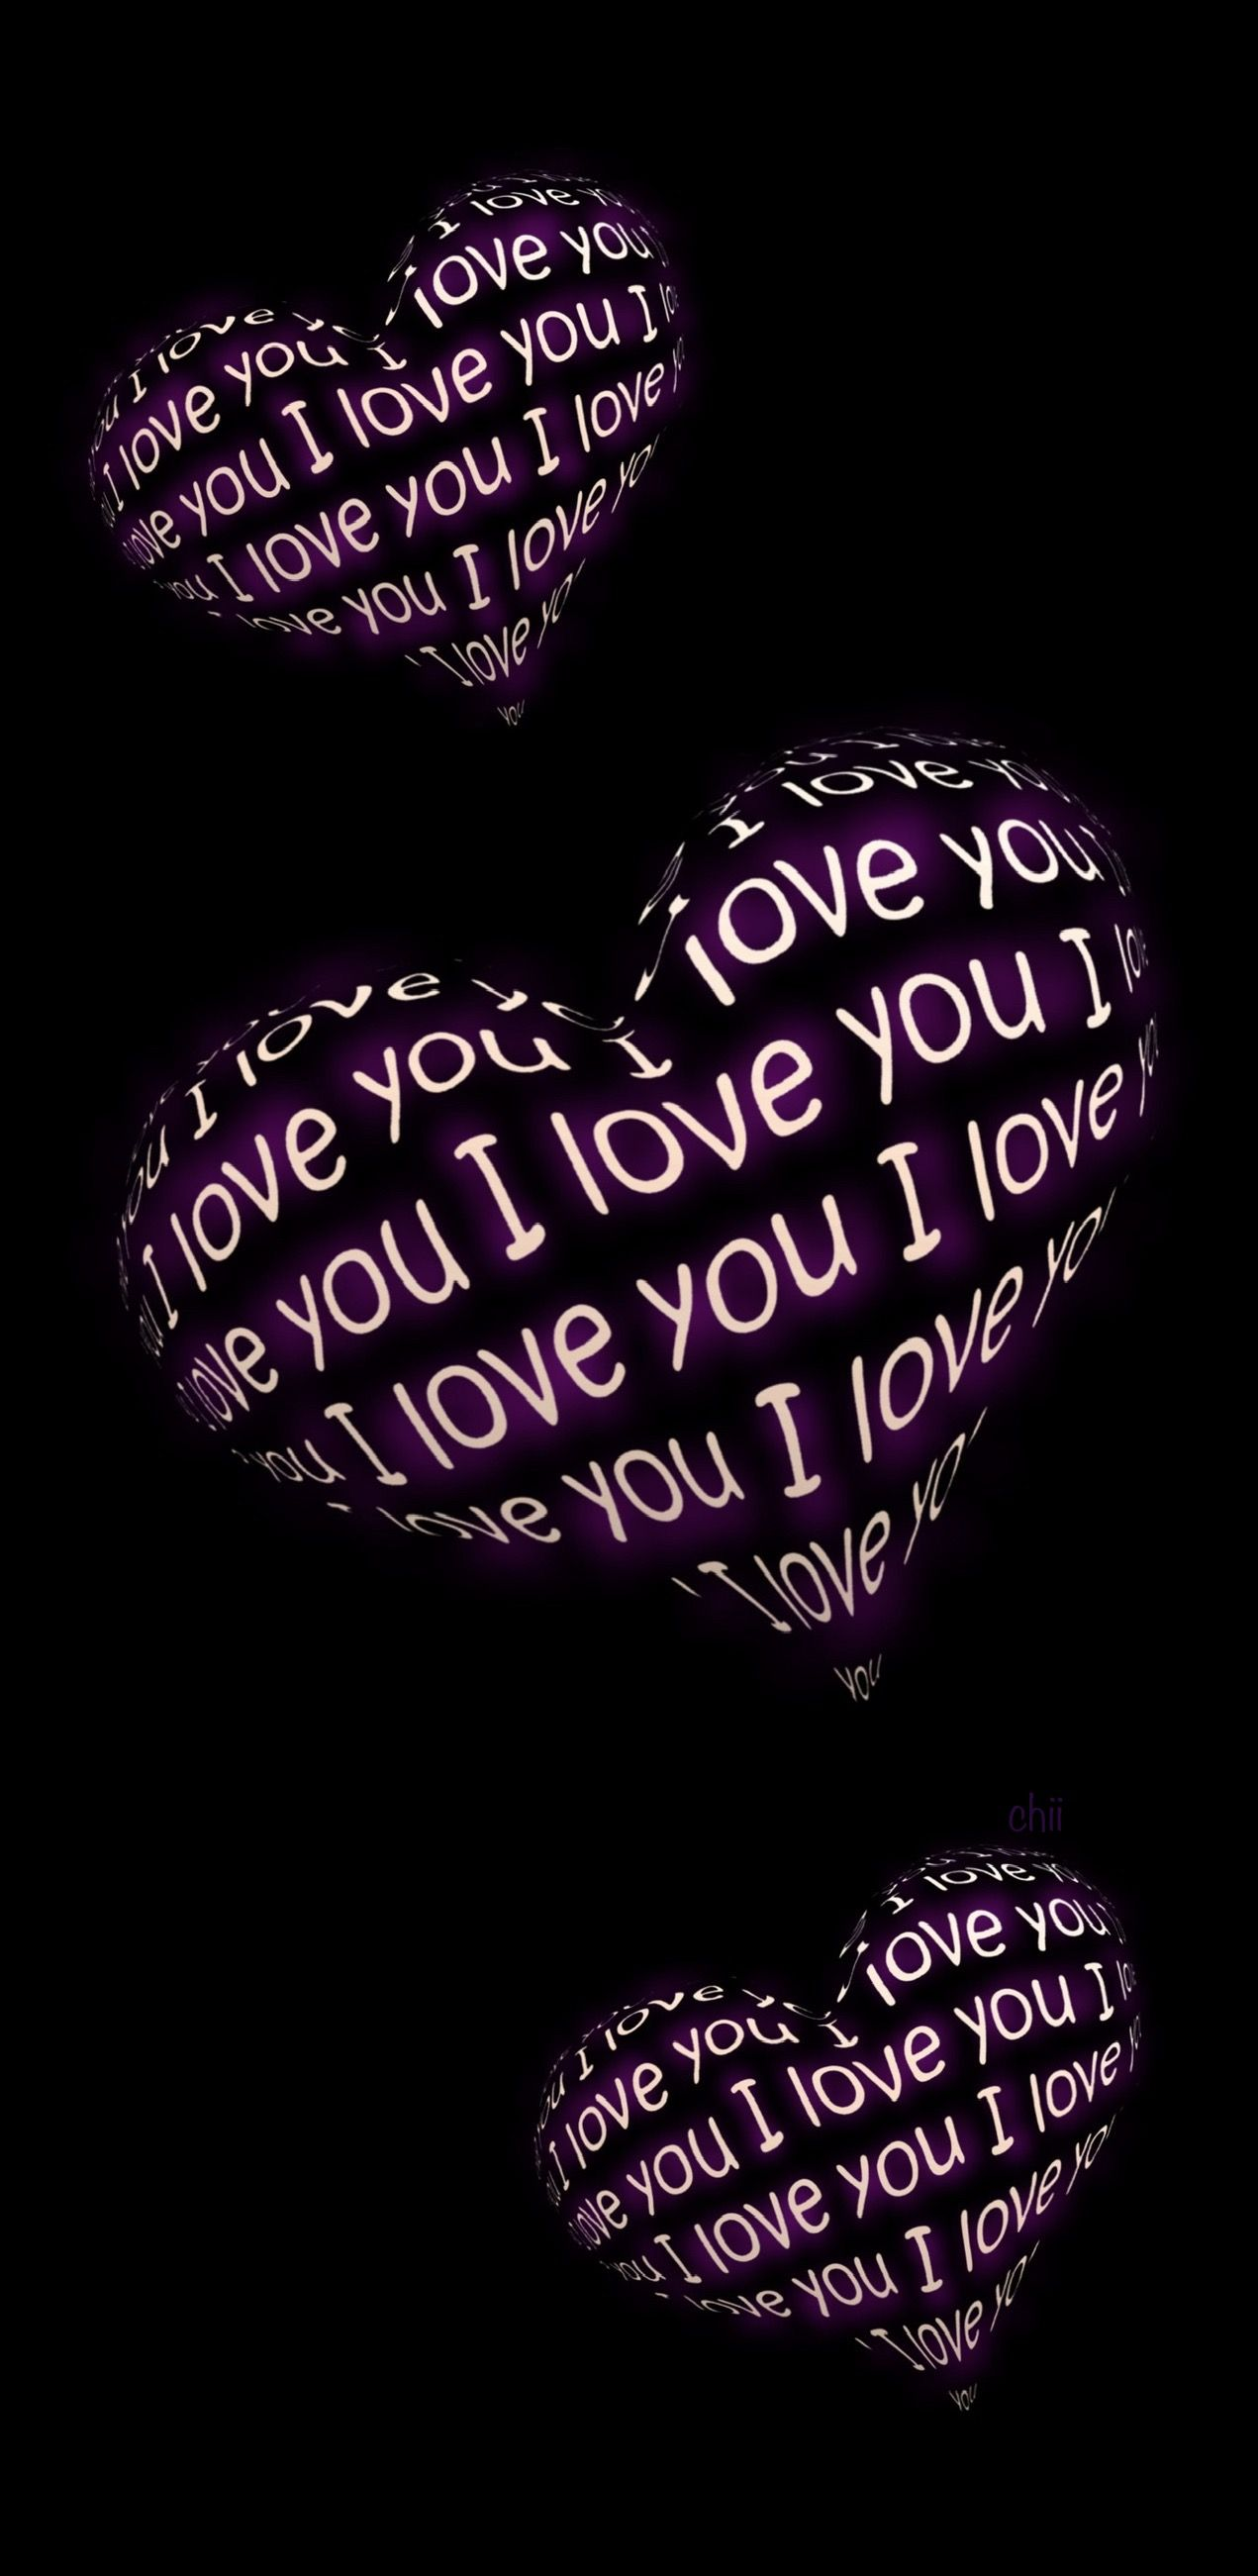 Pin By Nancy Waller On Iphone Wallpapers Love Wallpaper I Love You Images Valentines Wallpaper